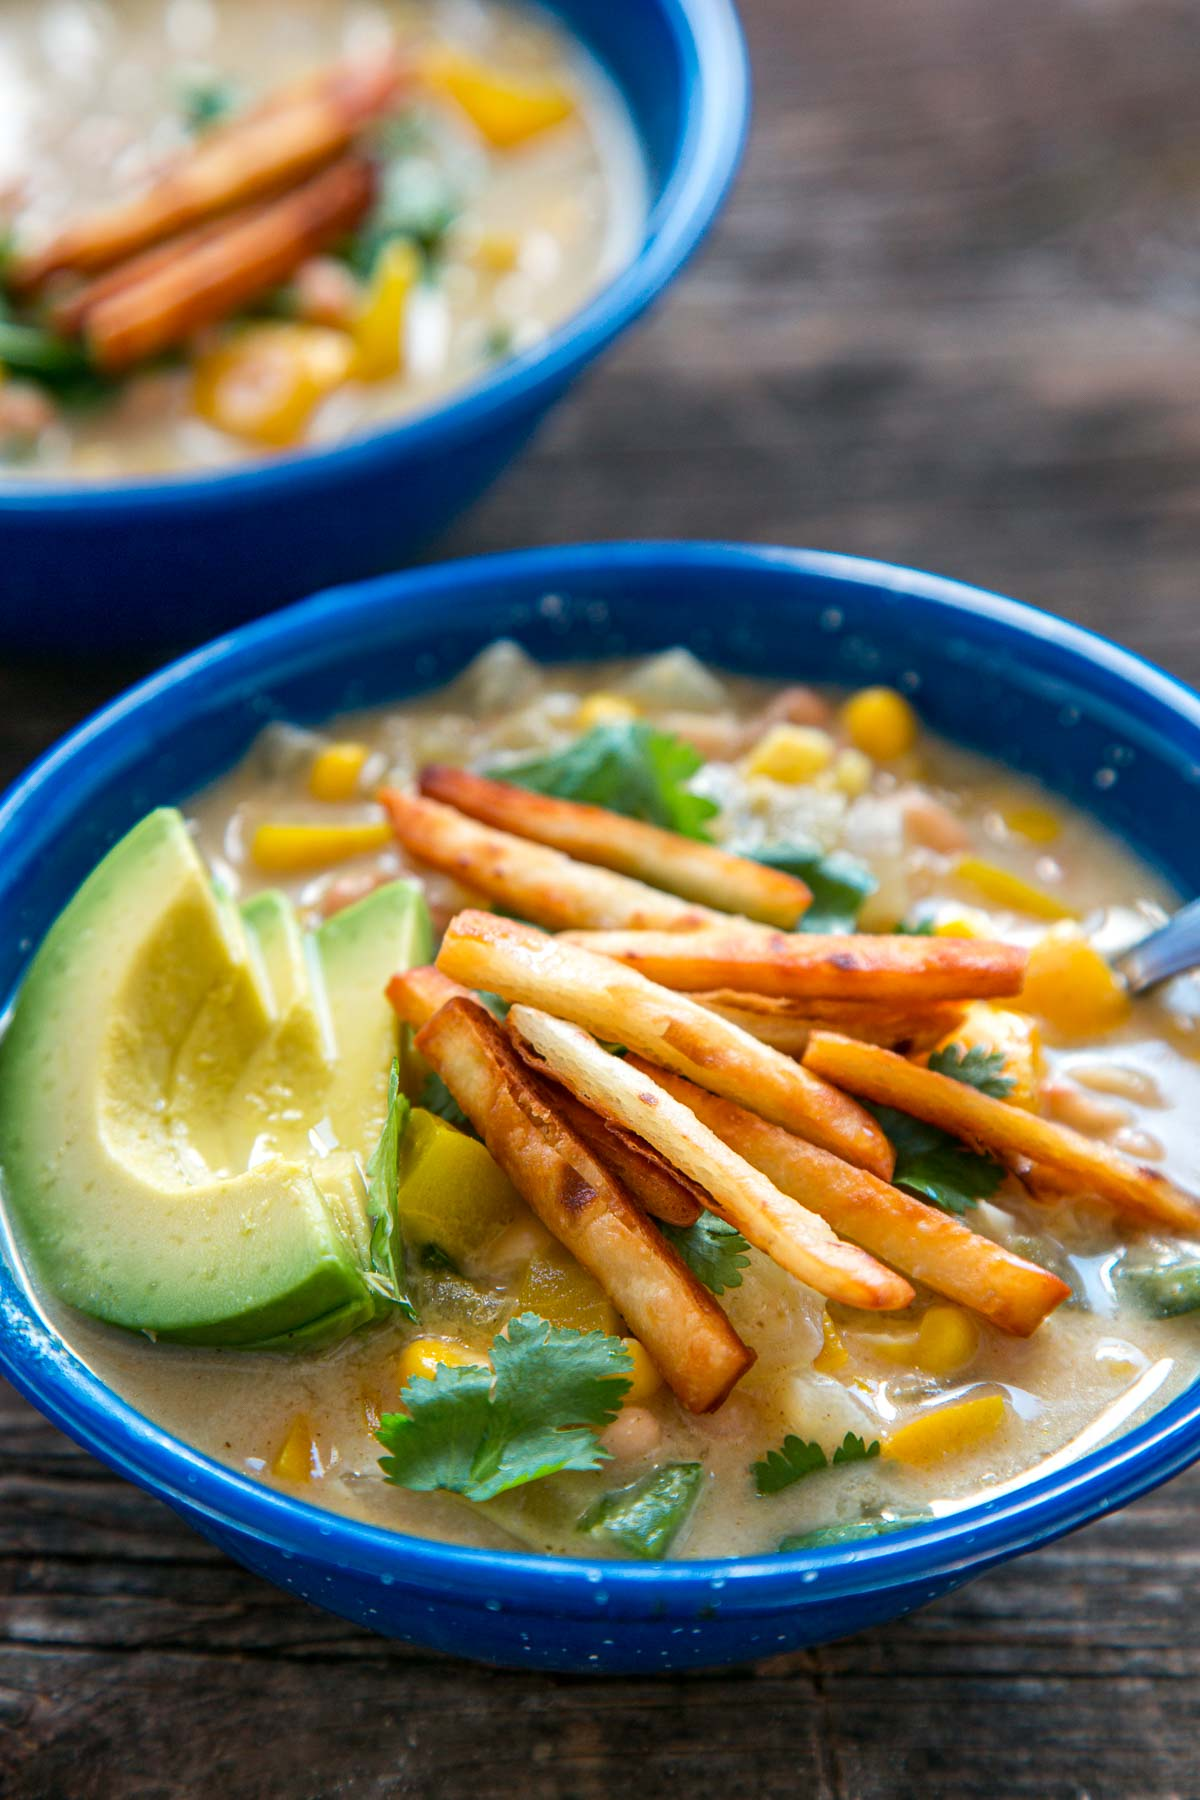 Two blue bowls of white bean chili on a table